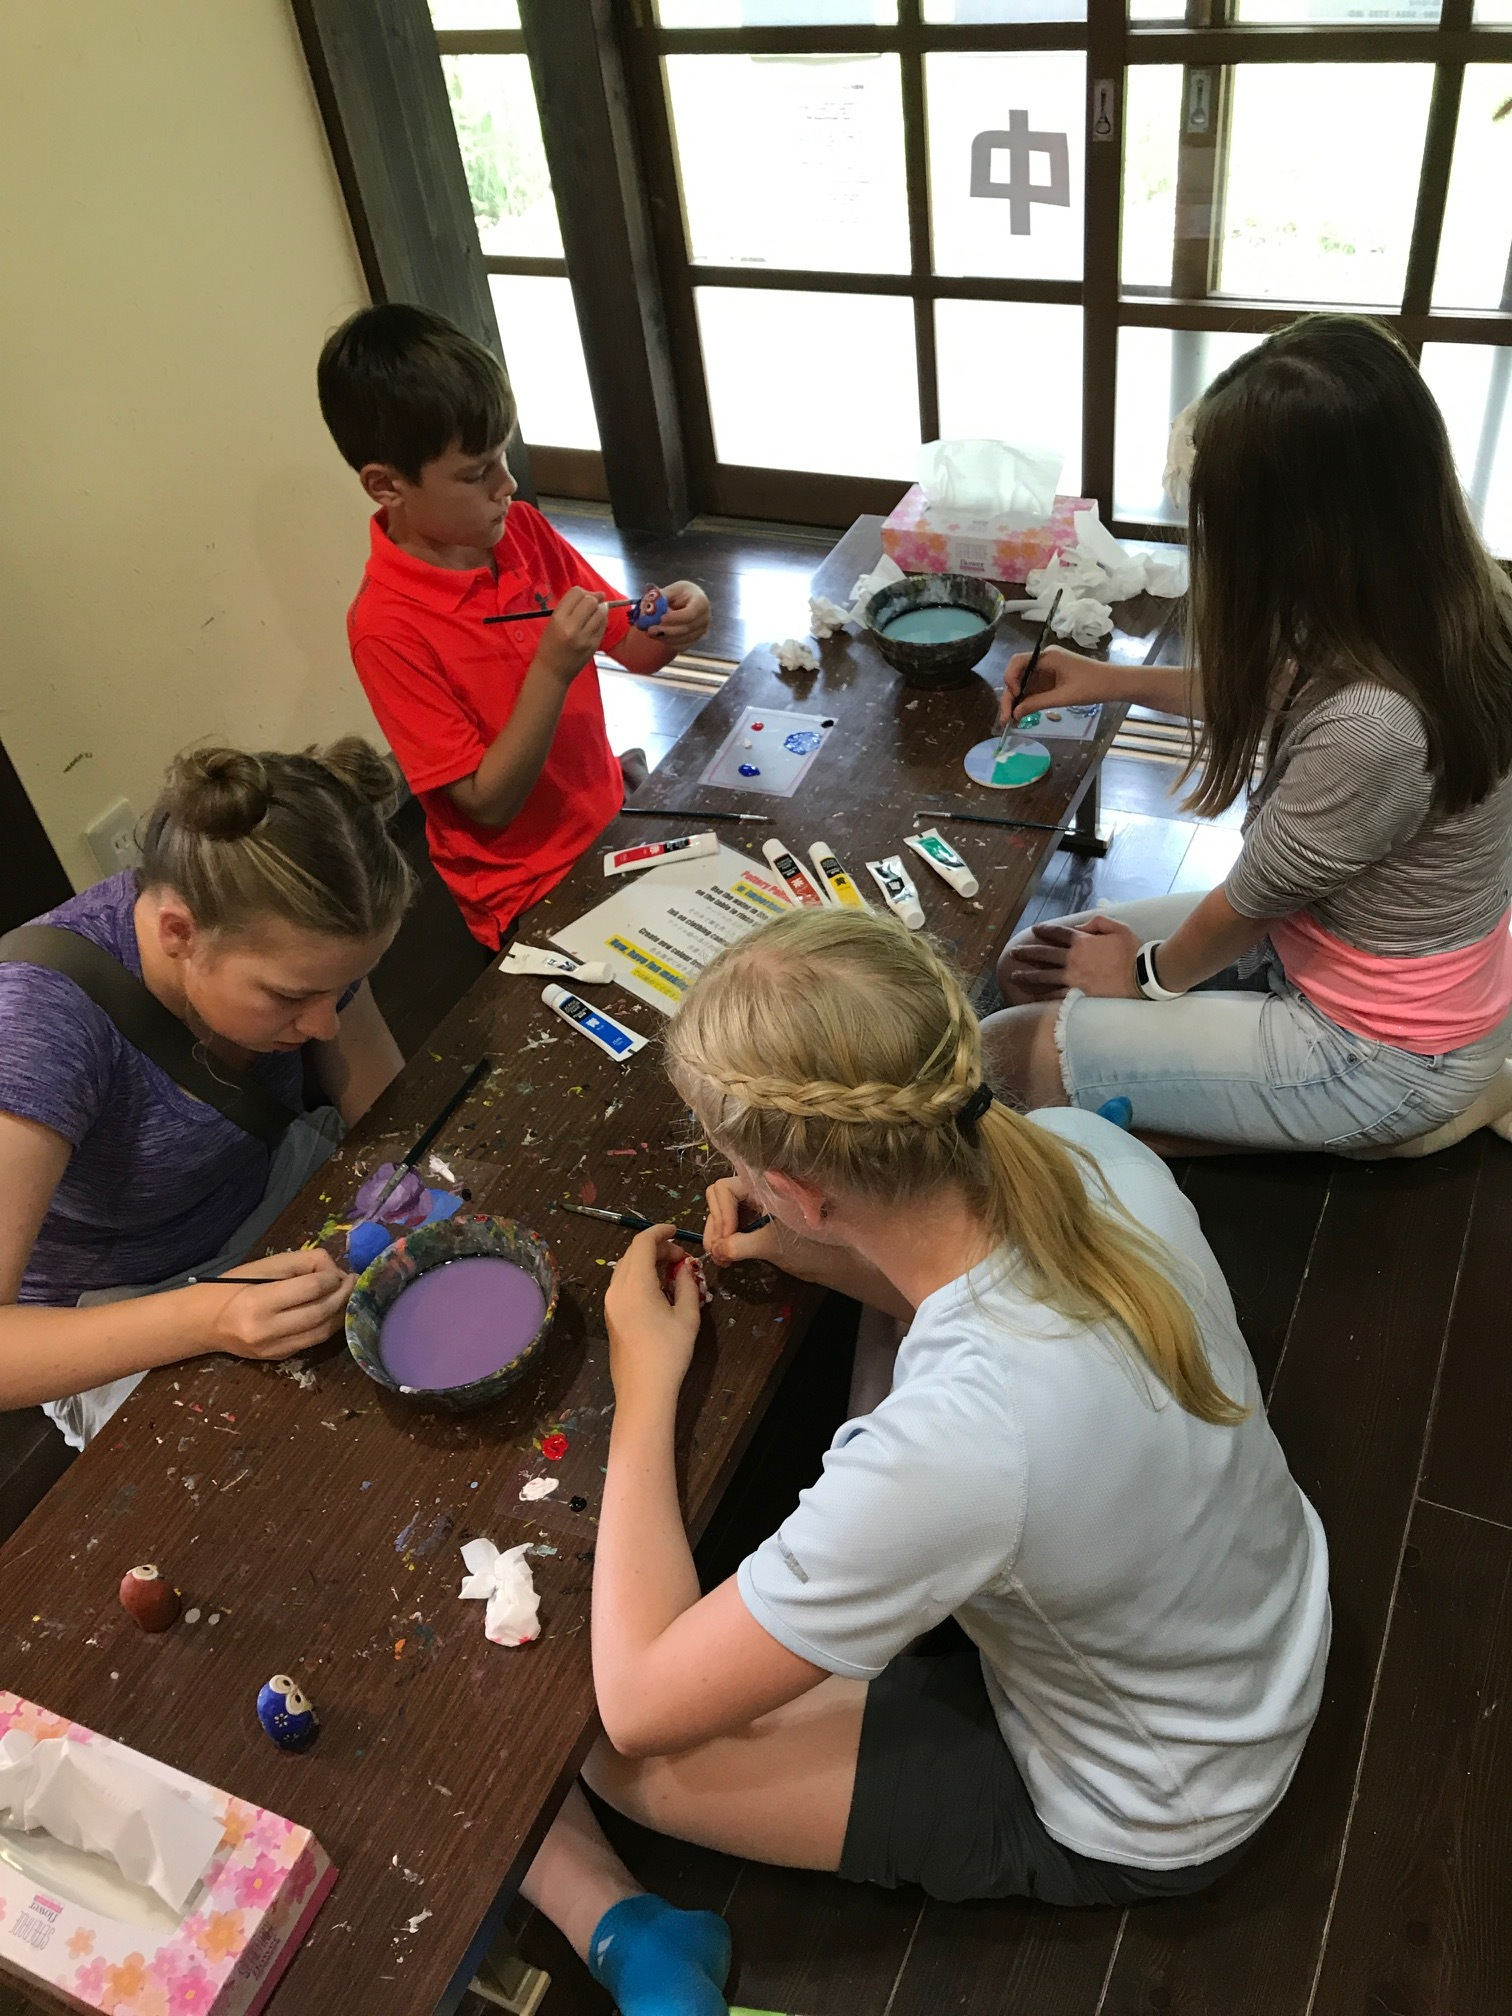 Crafting in the village